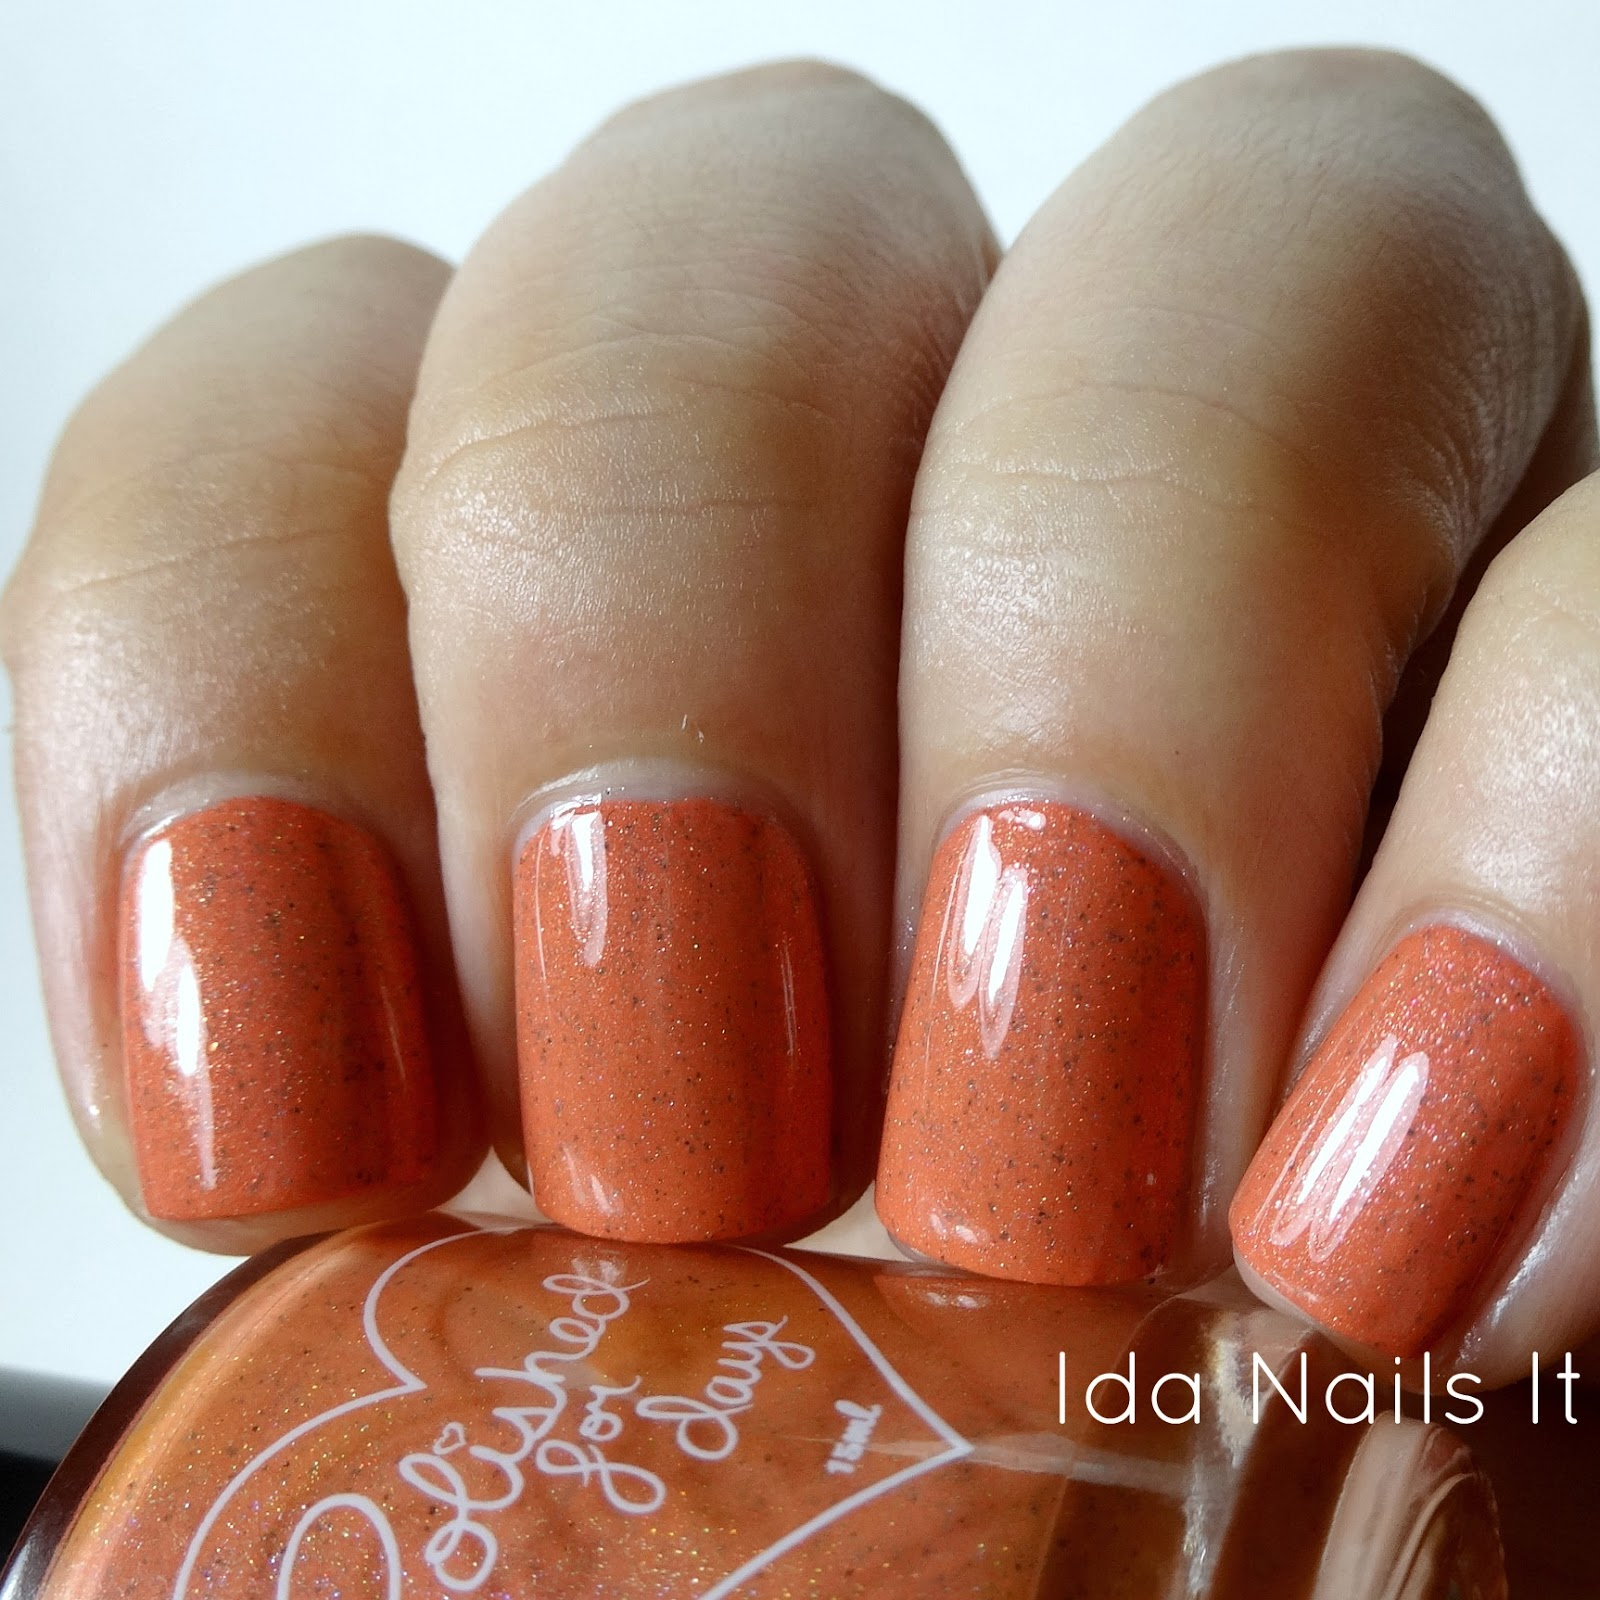 Ida Nails It: Polished for Days Halloween 2016 Trio Collection ...